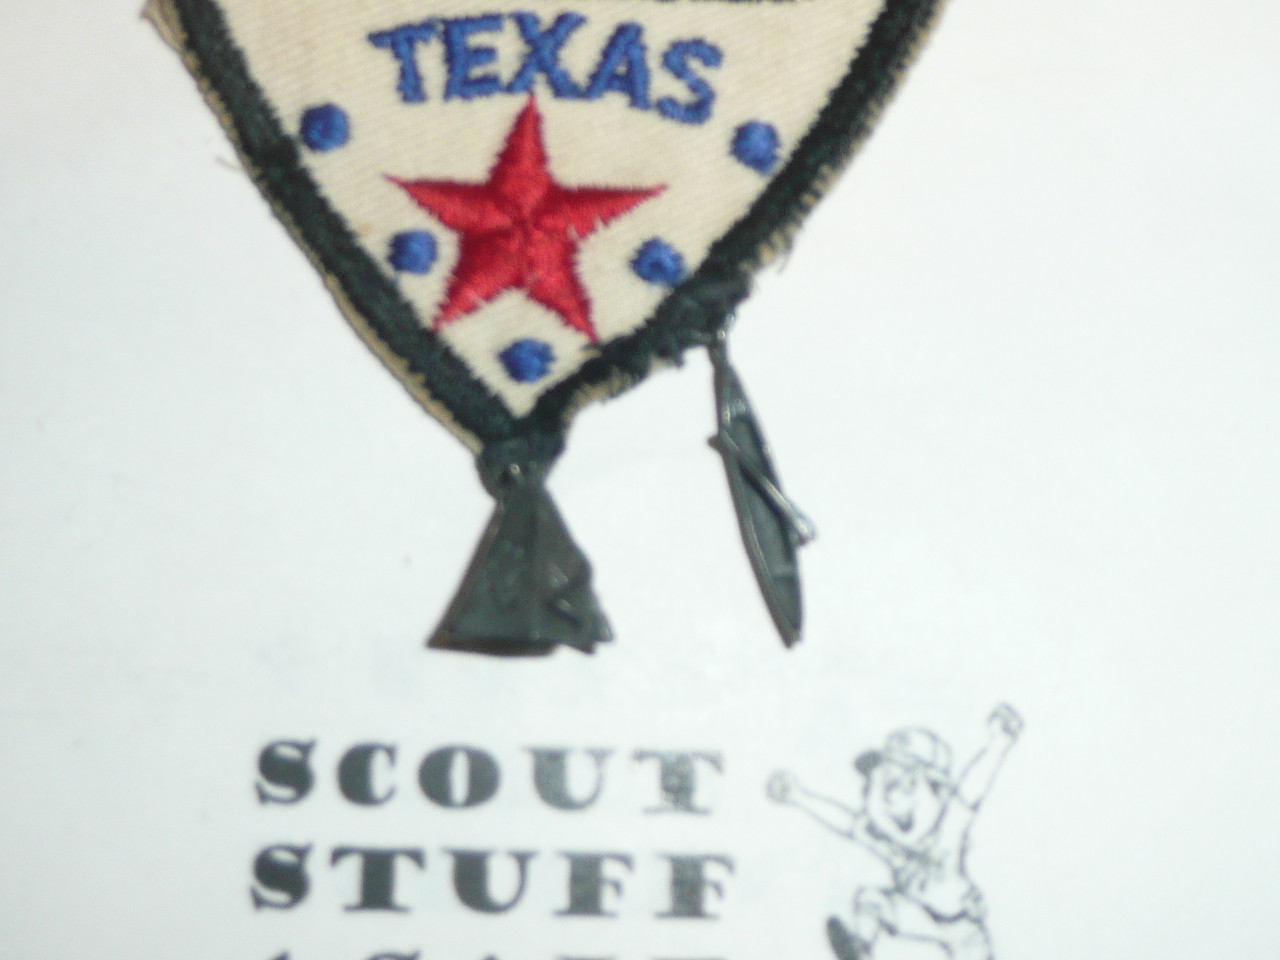 Capitol Area Council Scout Camps c/e Twill Patch, with teepee and canoe hanging off